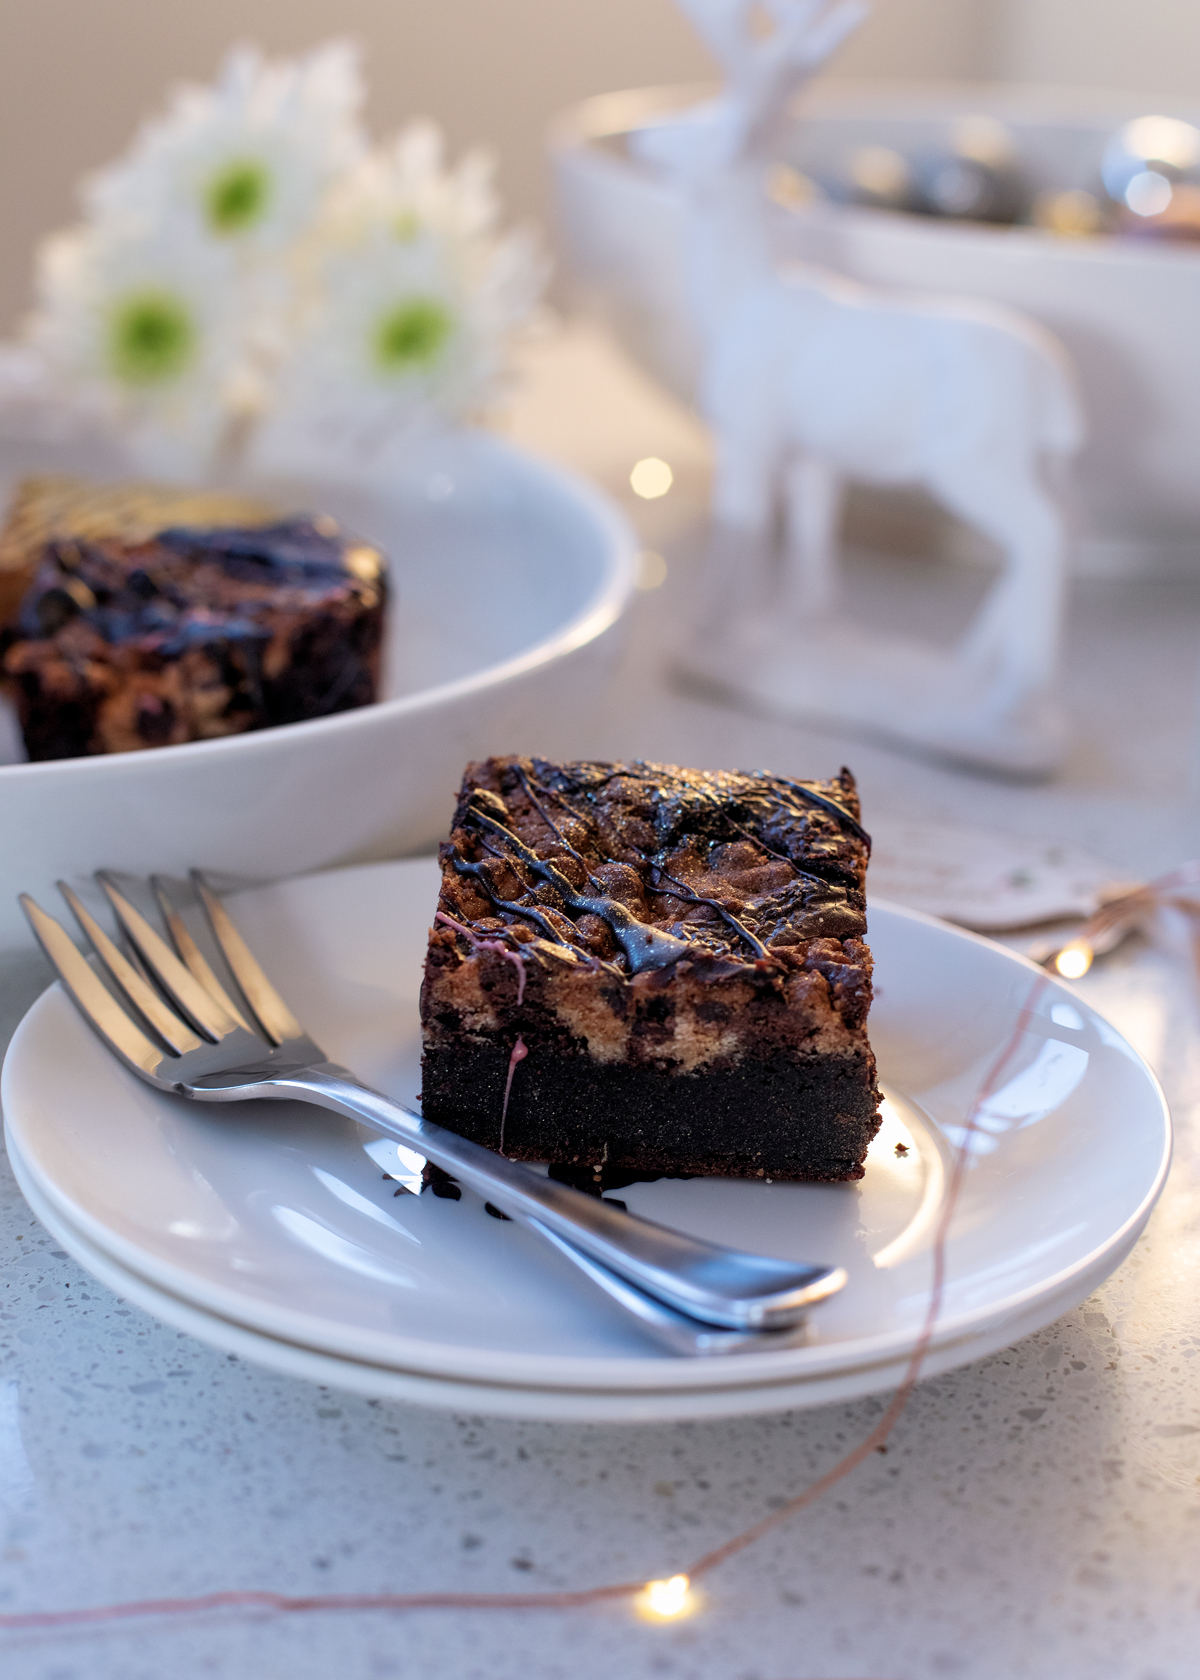 2018 Christmas gift guide Inspiring Wit blog featuring Perth gift ideas Ox Rabbit indulgent desserts, offering a tempting range of mouth-watering gooey brownies